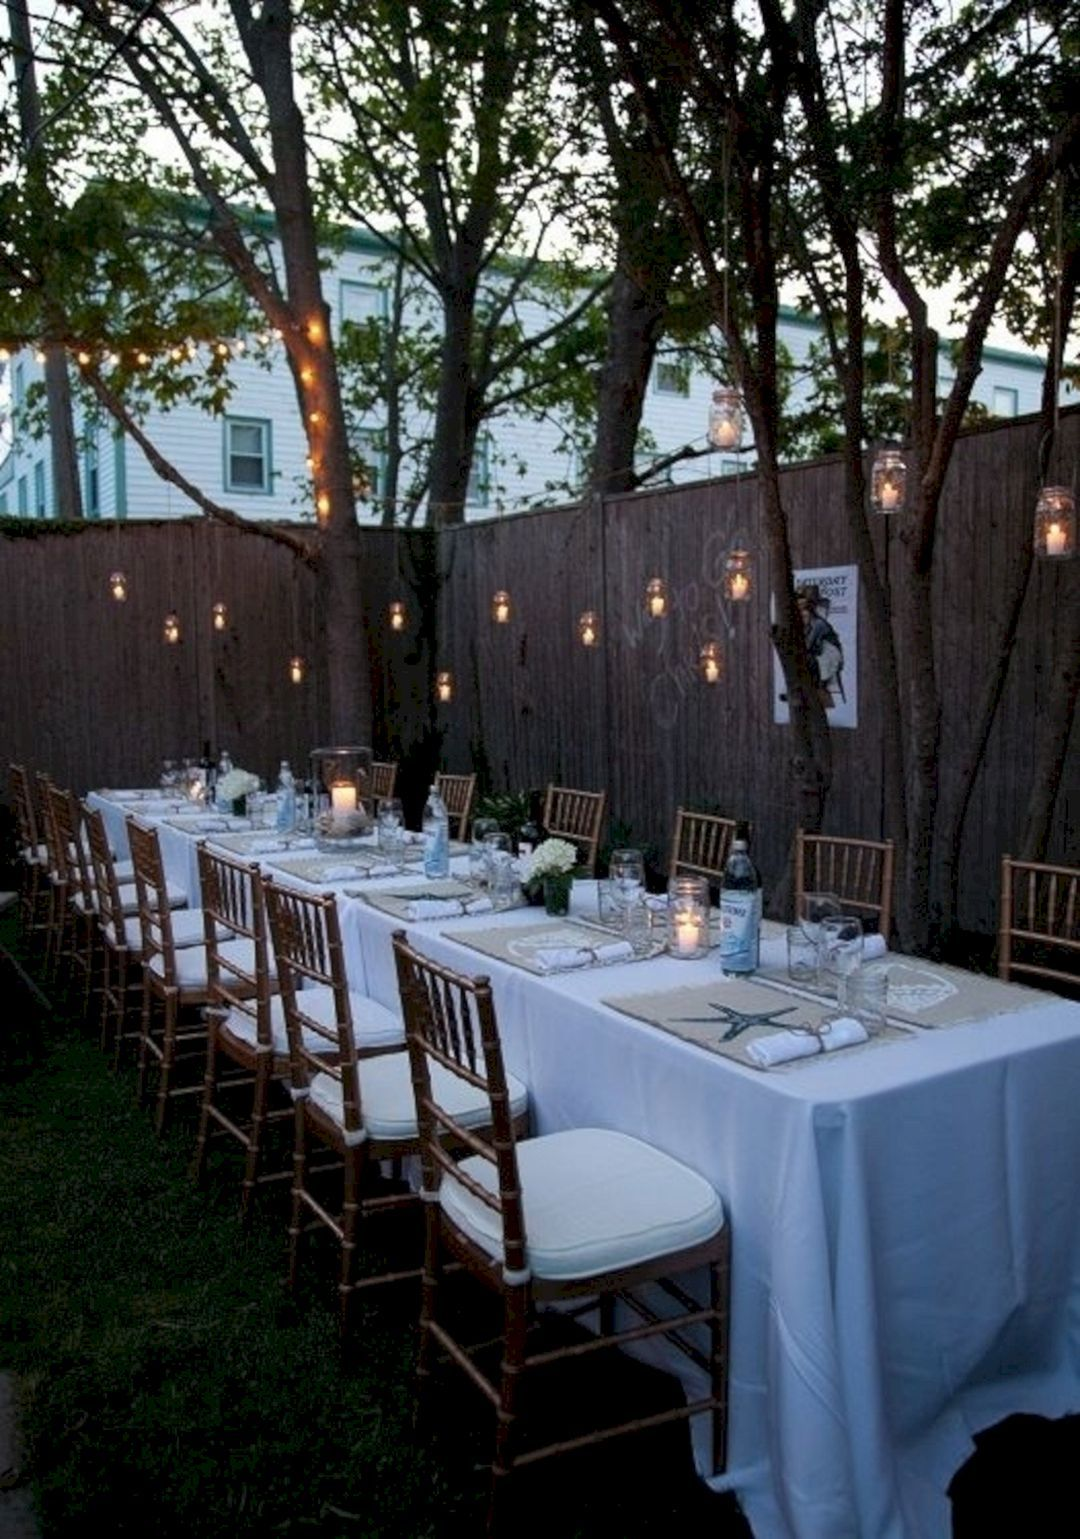 12 Marvelous Outdoor Wedding Party Ideas For Inspiration Wedding Backyard Reception Backyard Dinner Party Small Backyard Wedding